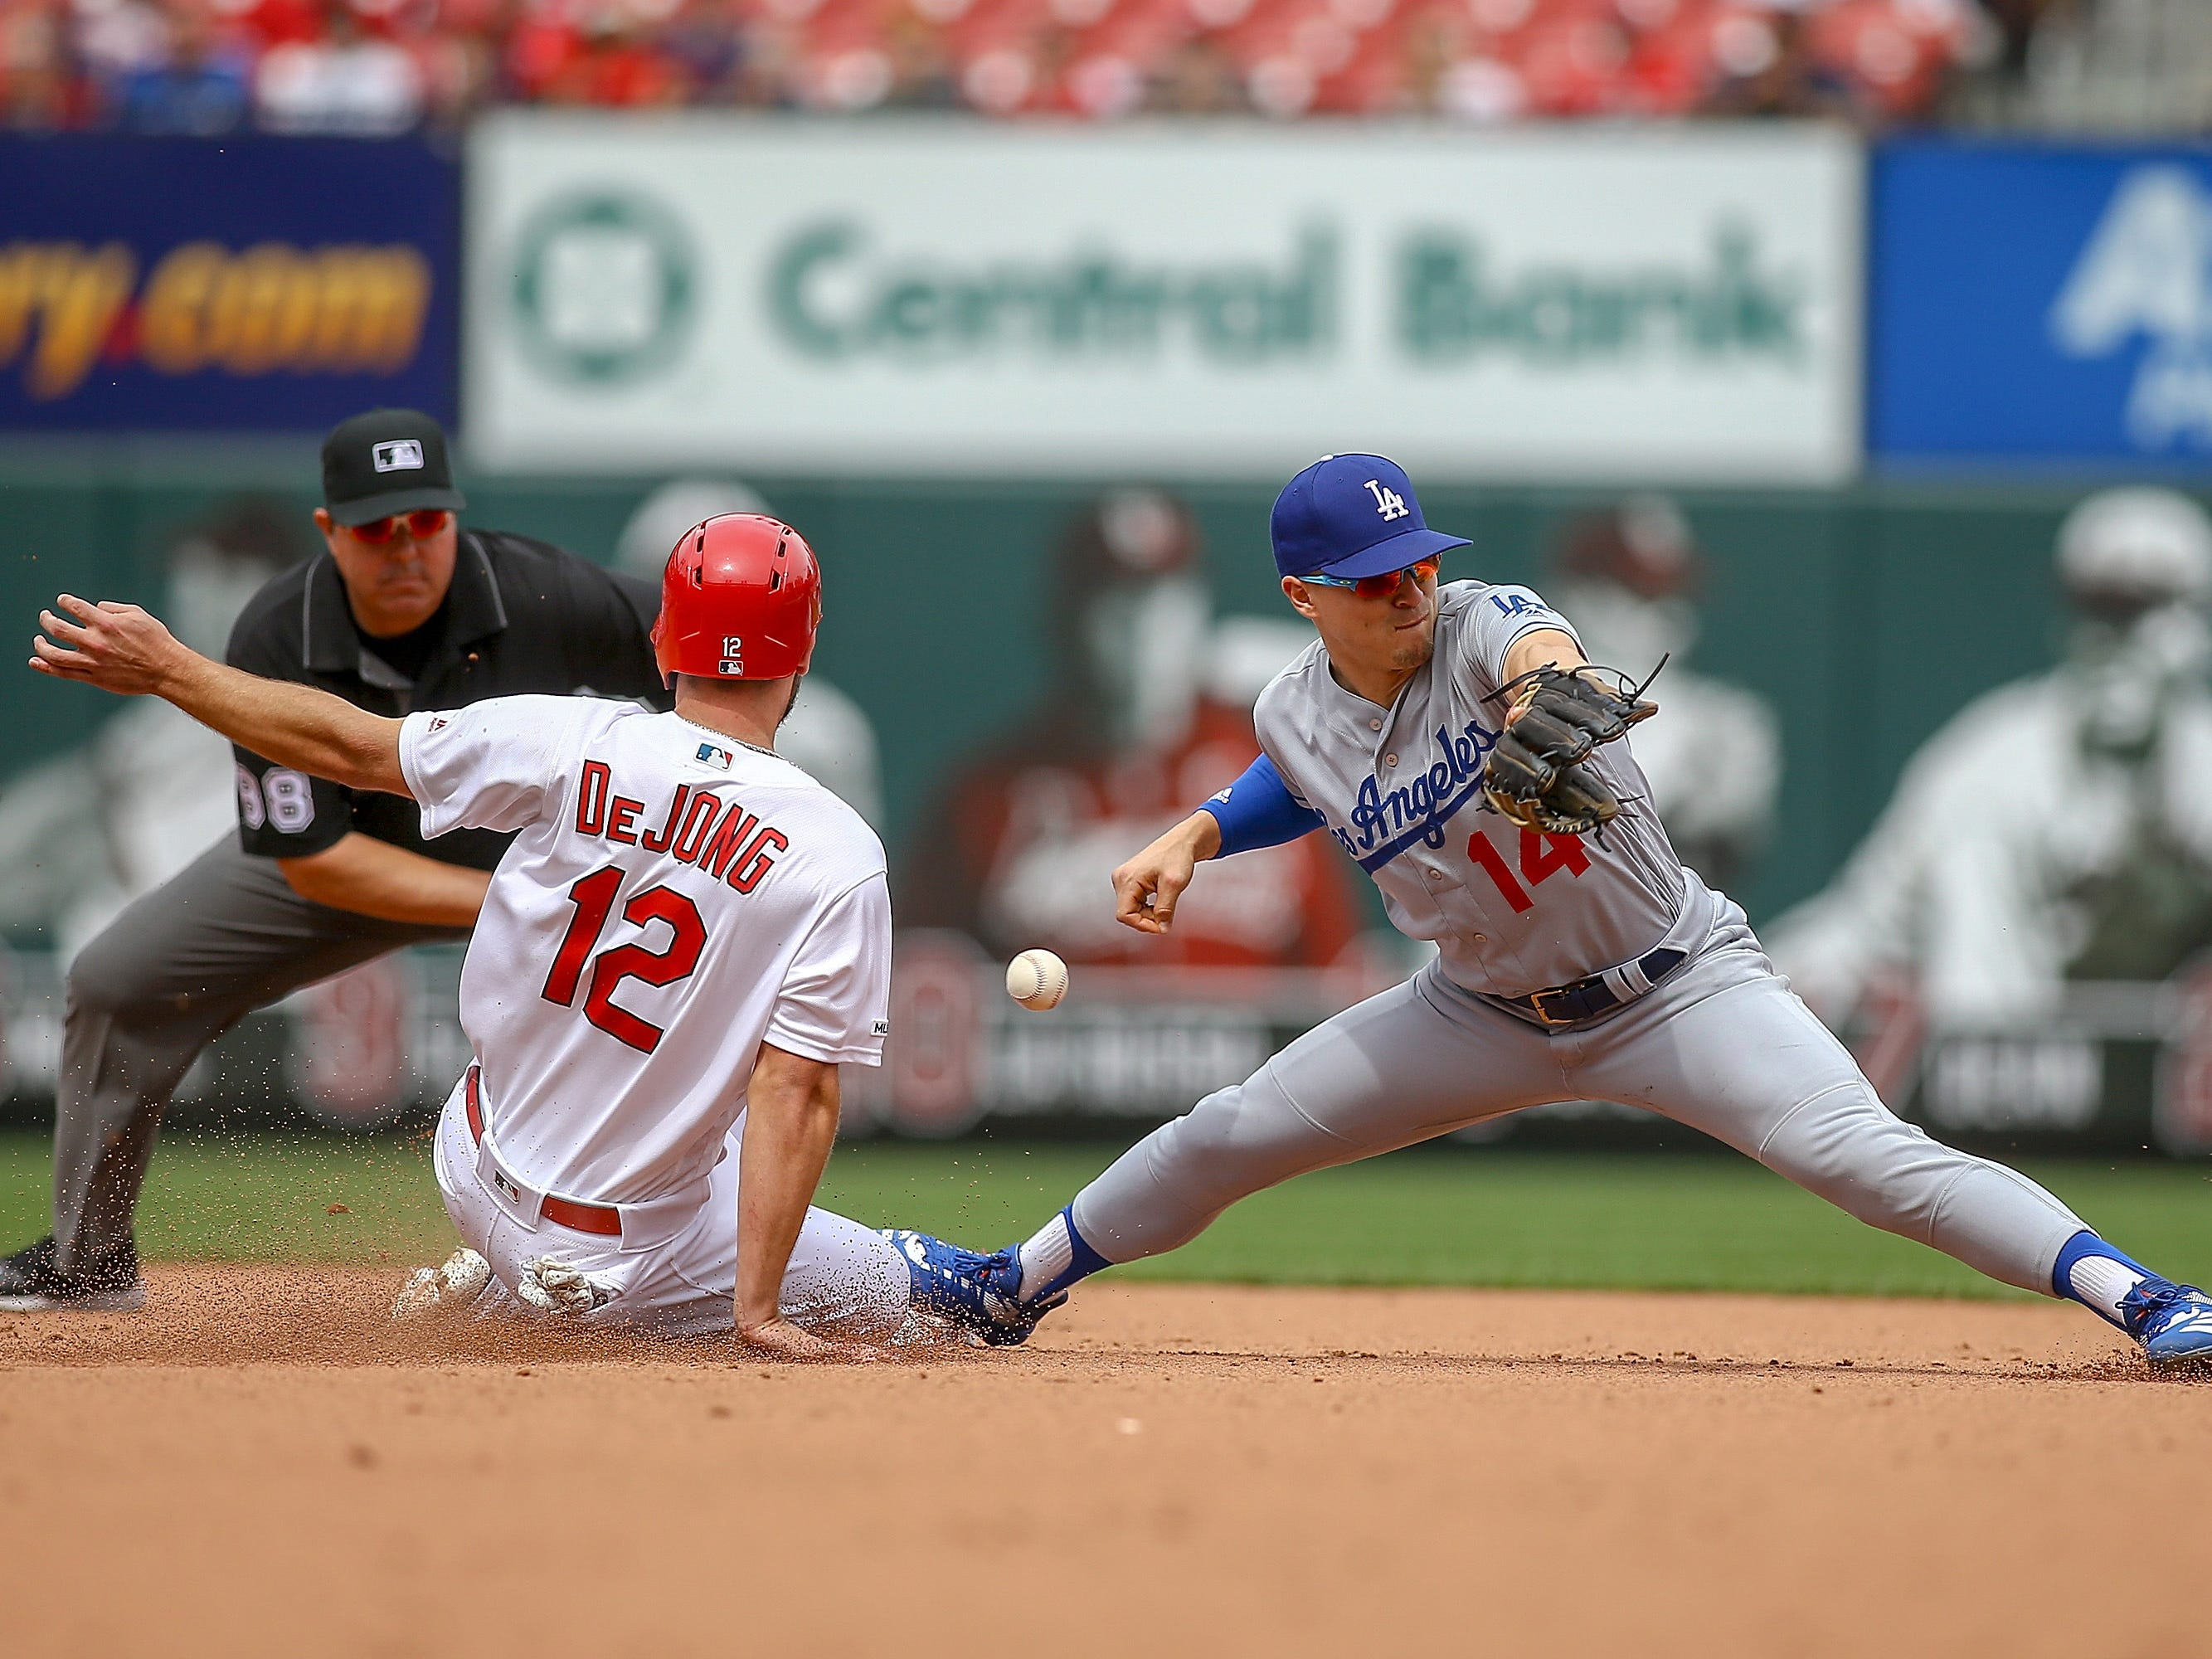 April 11: The  St. Louis Cardinals' Paul DeJong steals second against the Los Angeles Dodgers as Enrique Hernandez tries to corral the throw during the fifth inning at Busch Stadium. The Cardinals won the game, 11-7.